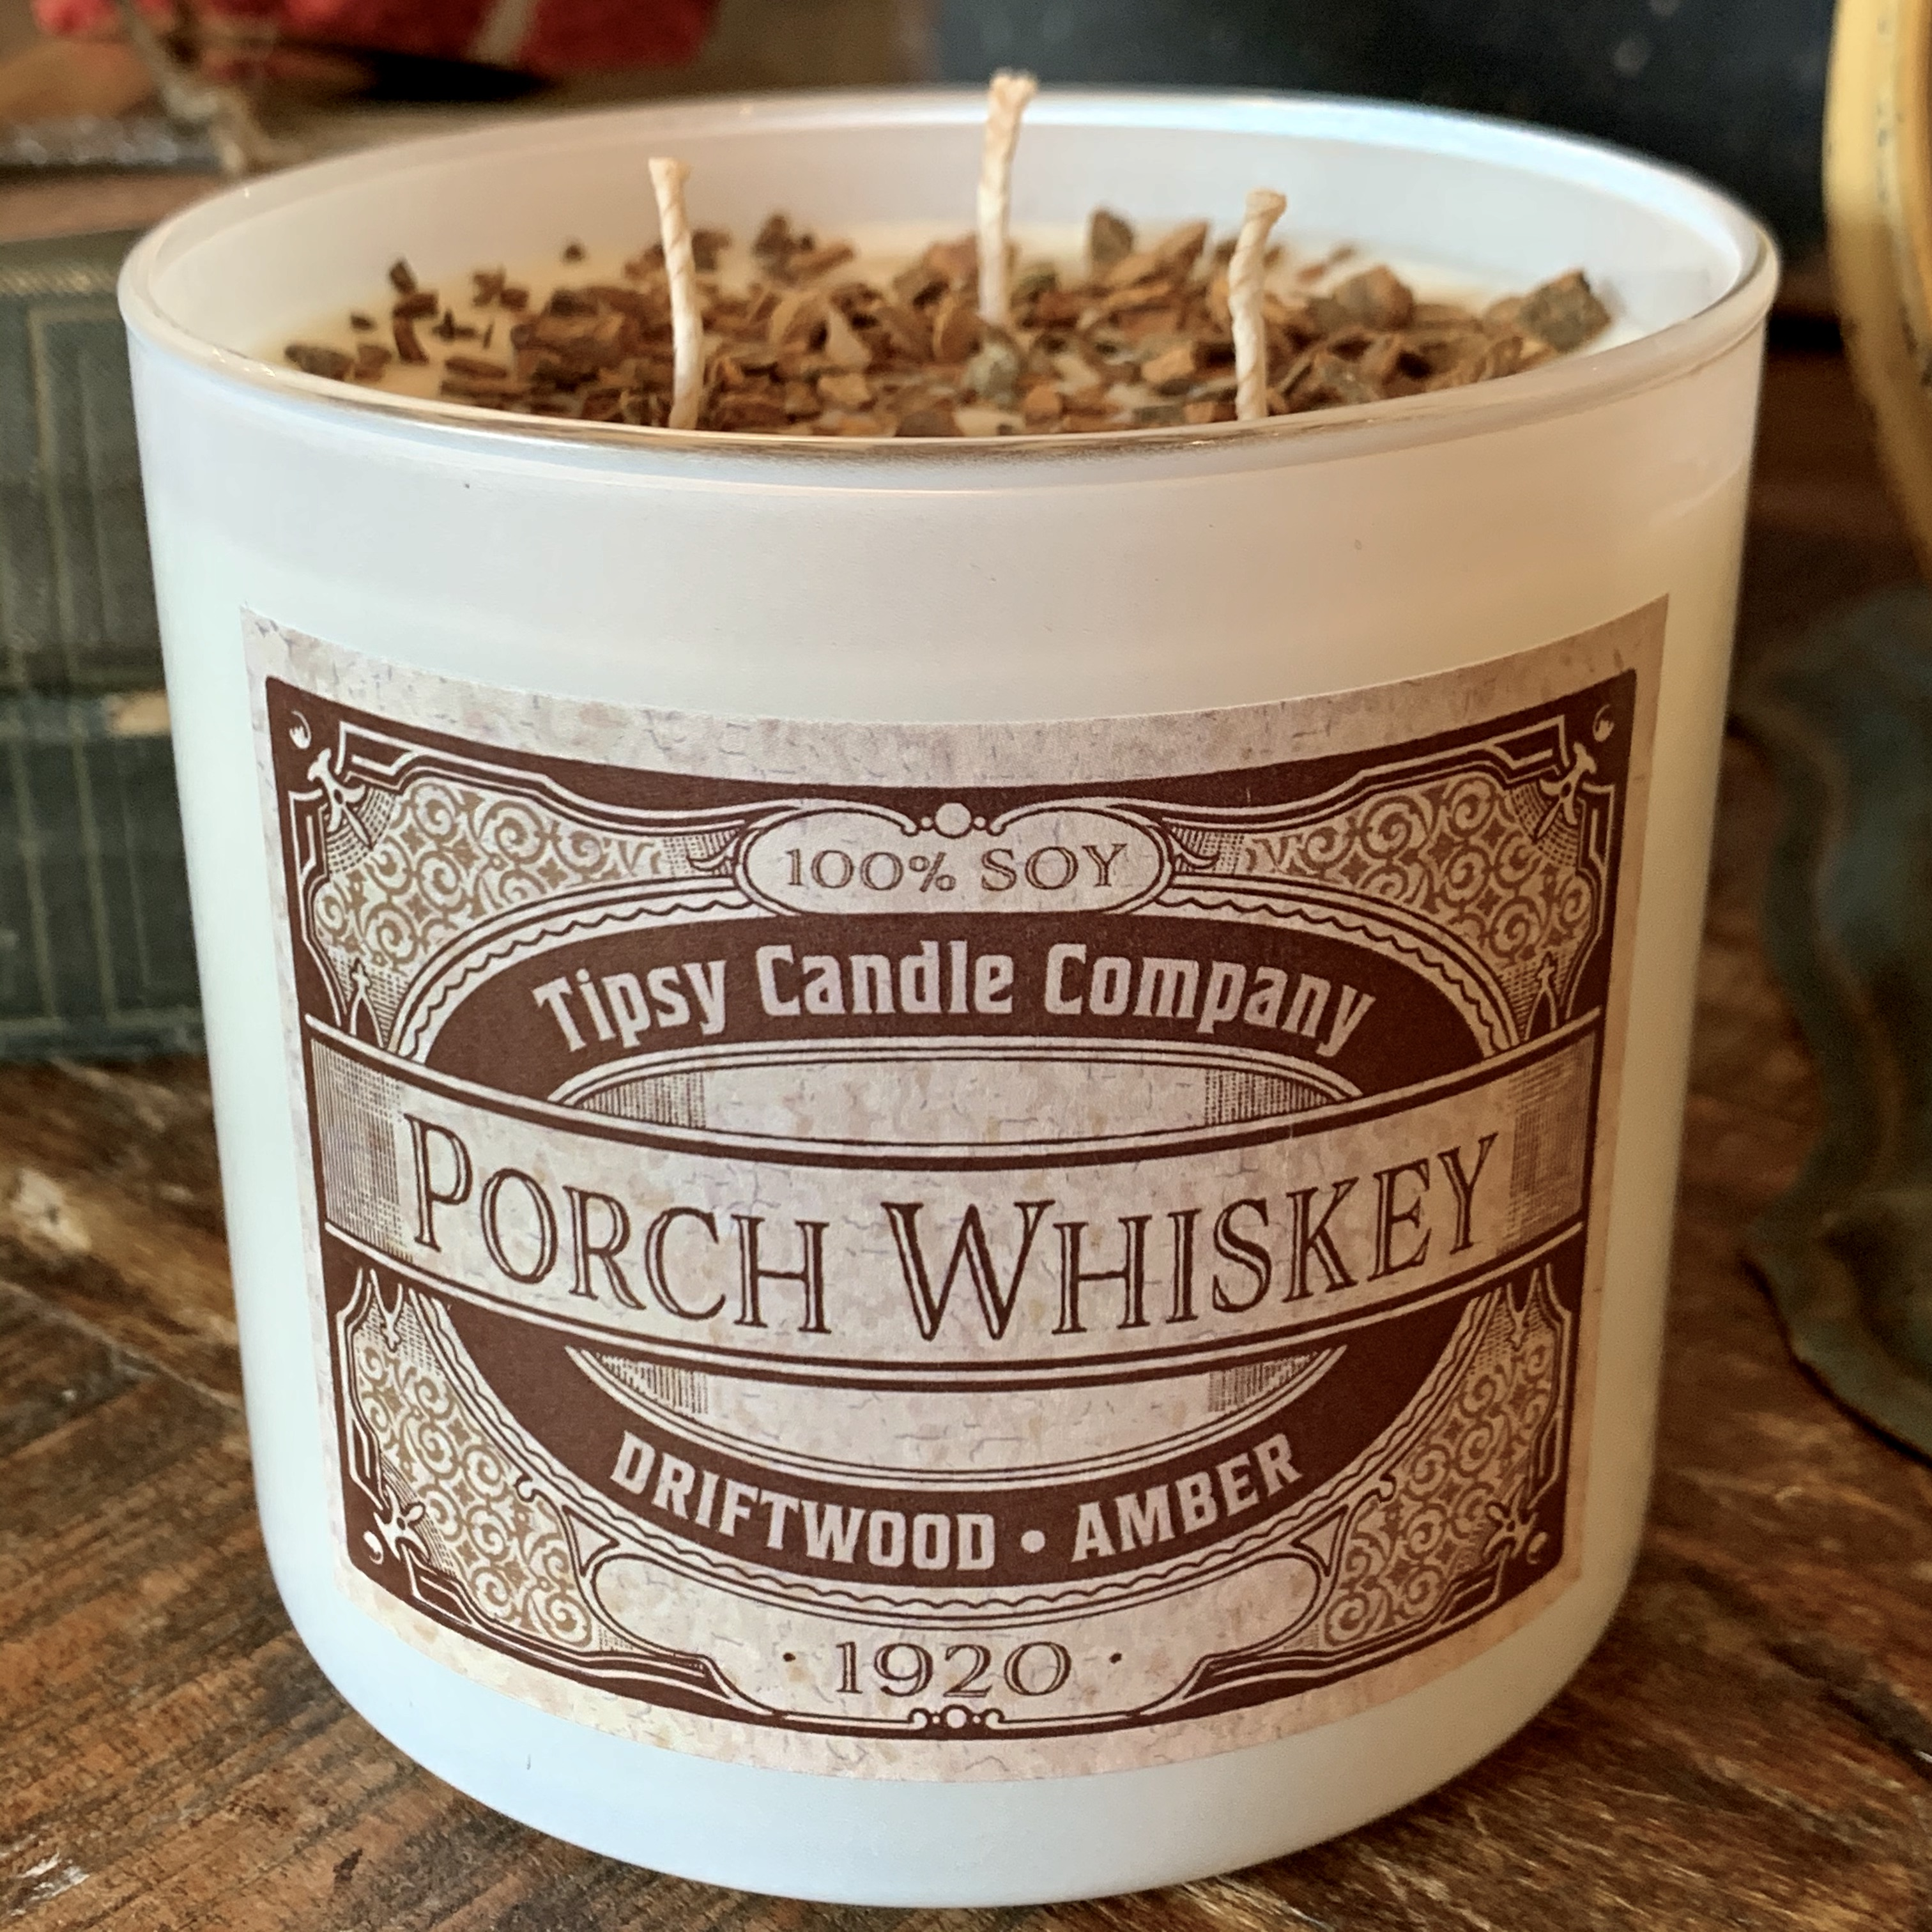 Porch Whiskey 3 wick Soy 17 ounce Candle made by Tipsy Candle Company